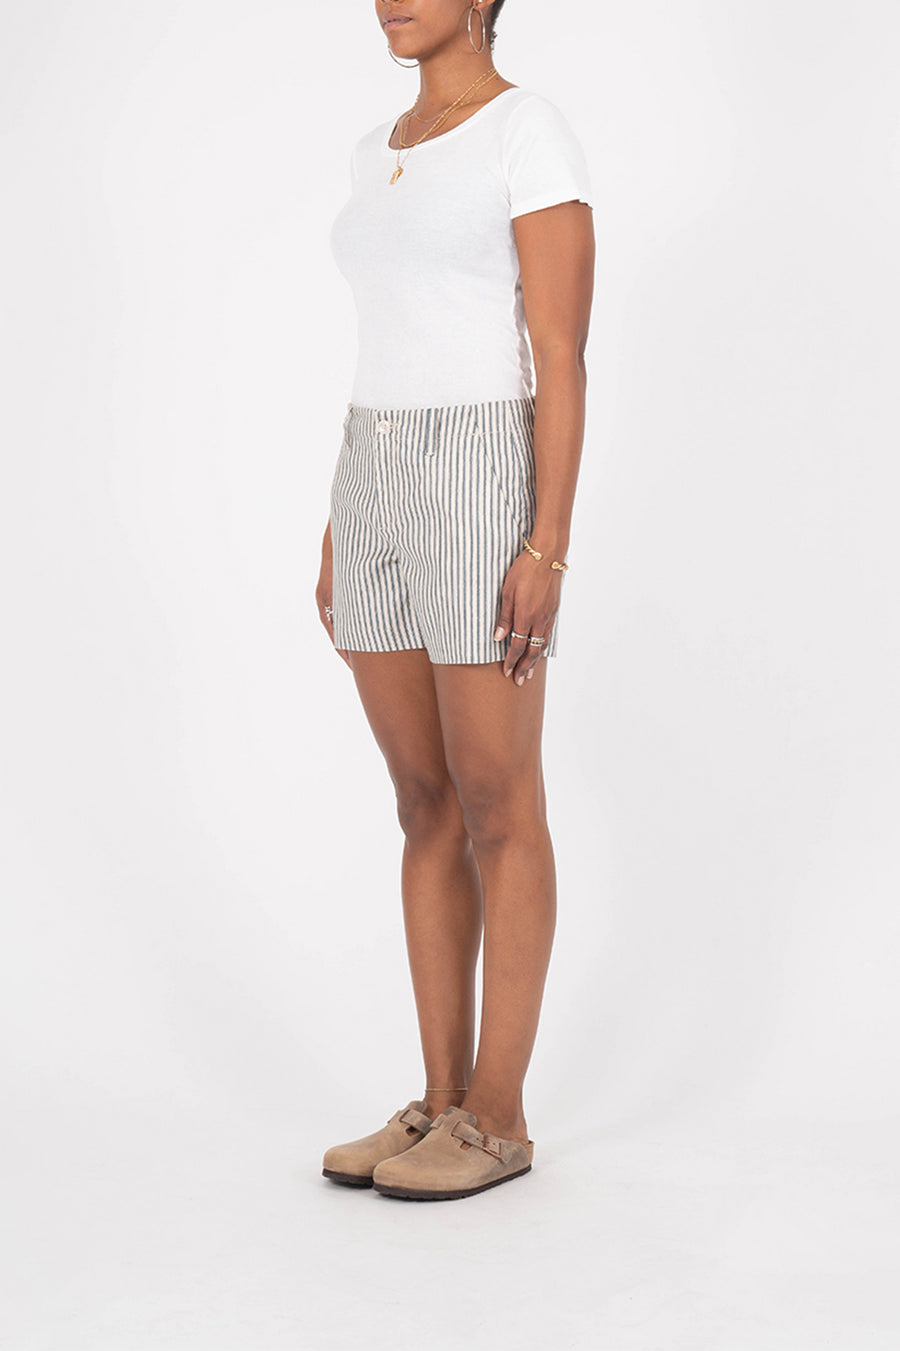 Andie Nautical Stripe Short